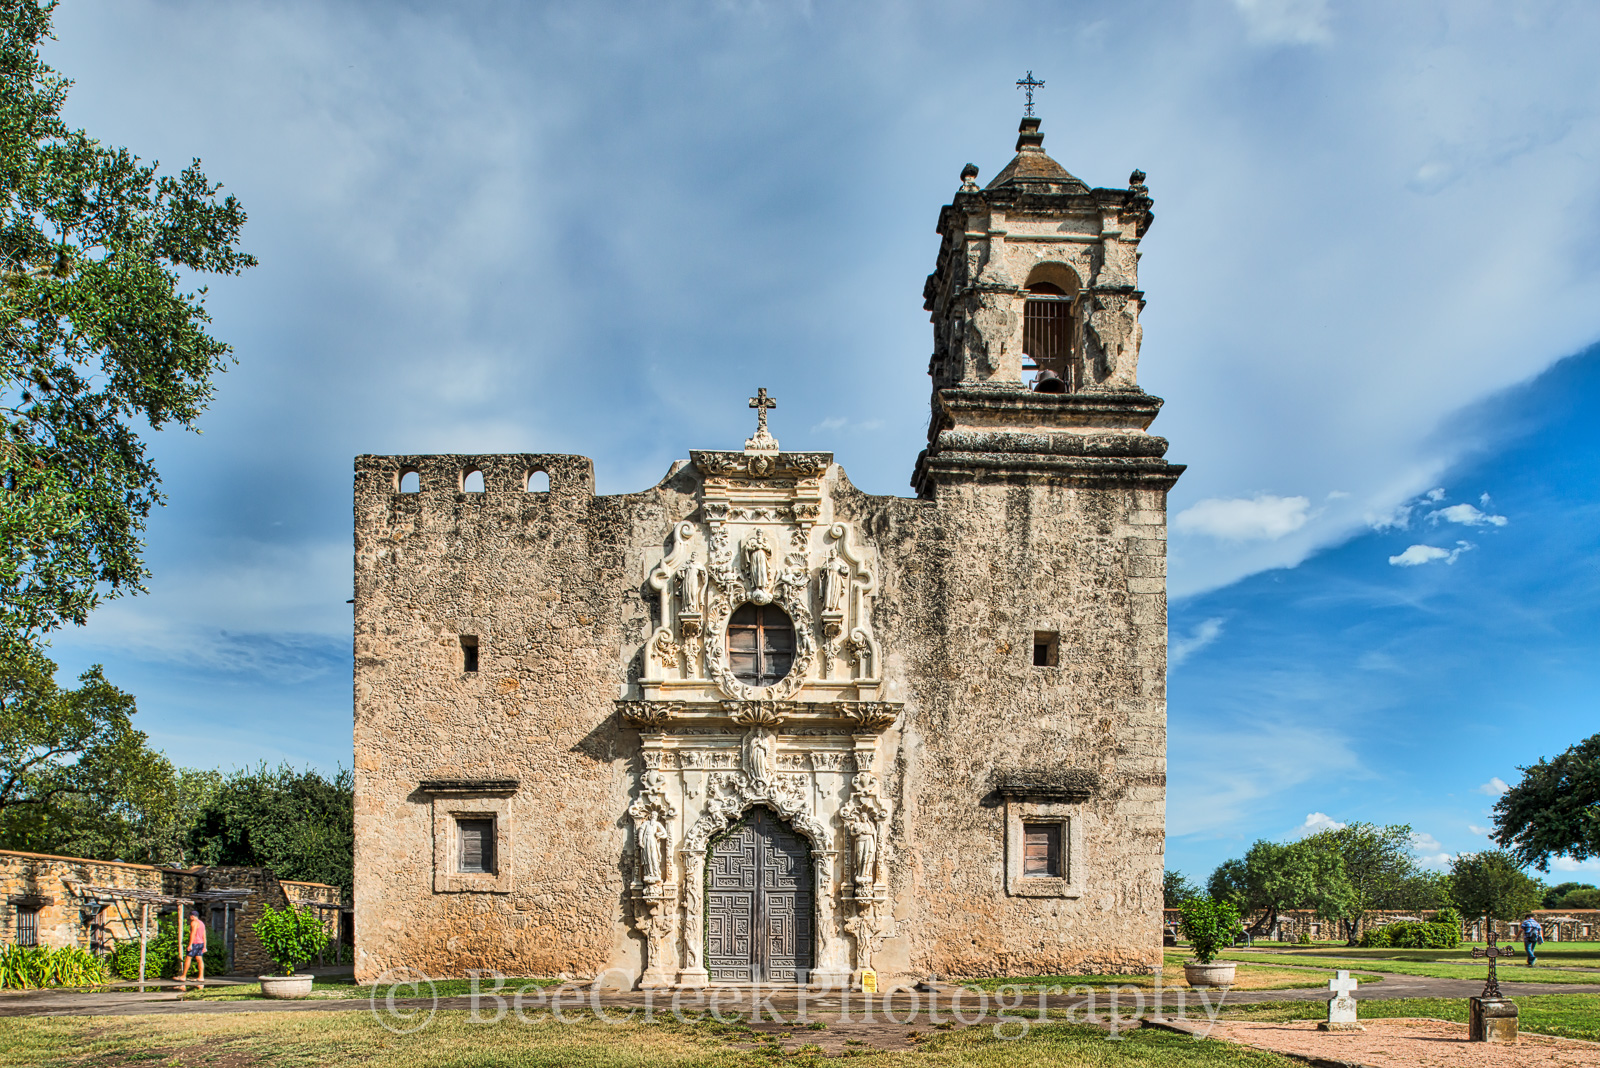 Mission San Jose, National Historic Landmarks, San Antonio, color, destinations, downtown, historic, indians, landmark, mexicans, spanish missions, texas missions, texians, tourist, tours, travel, wor, photo